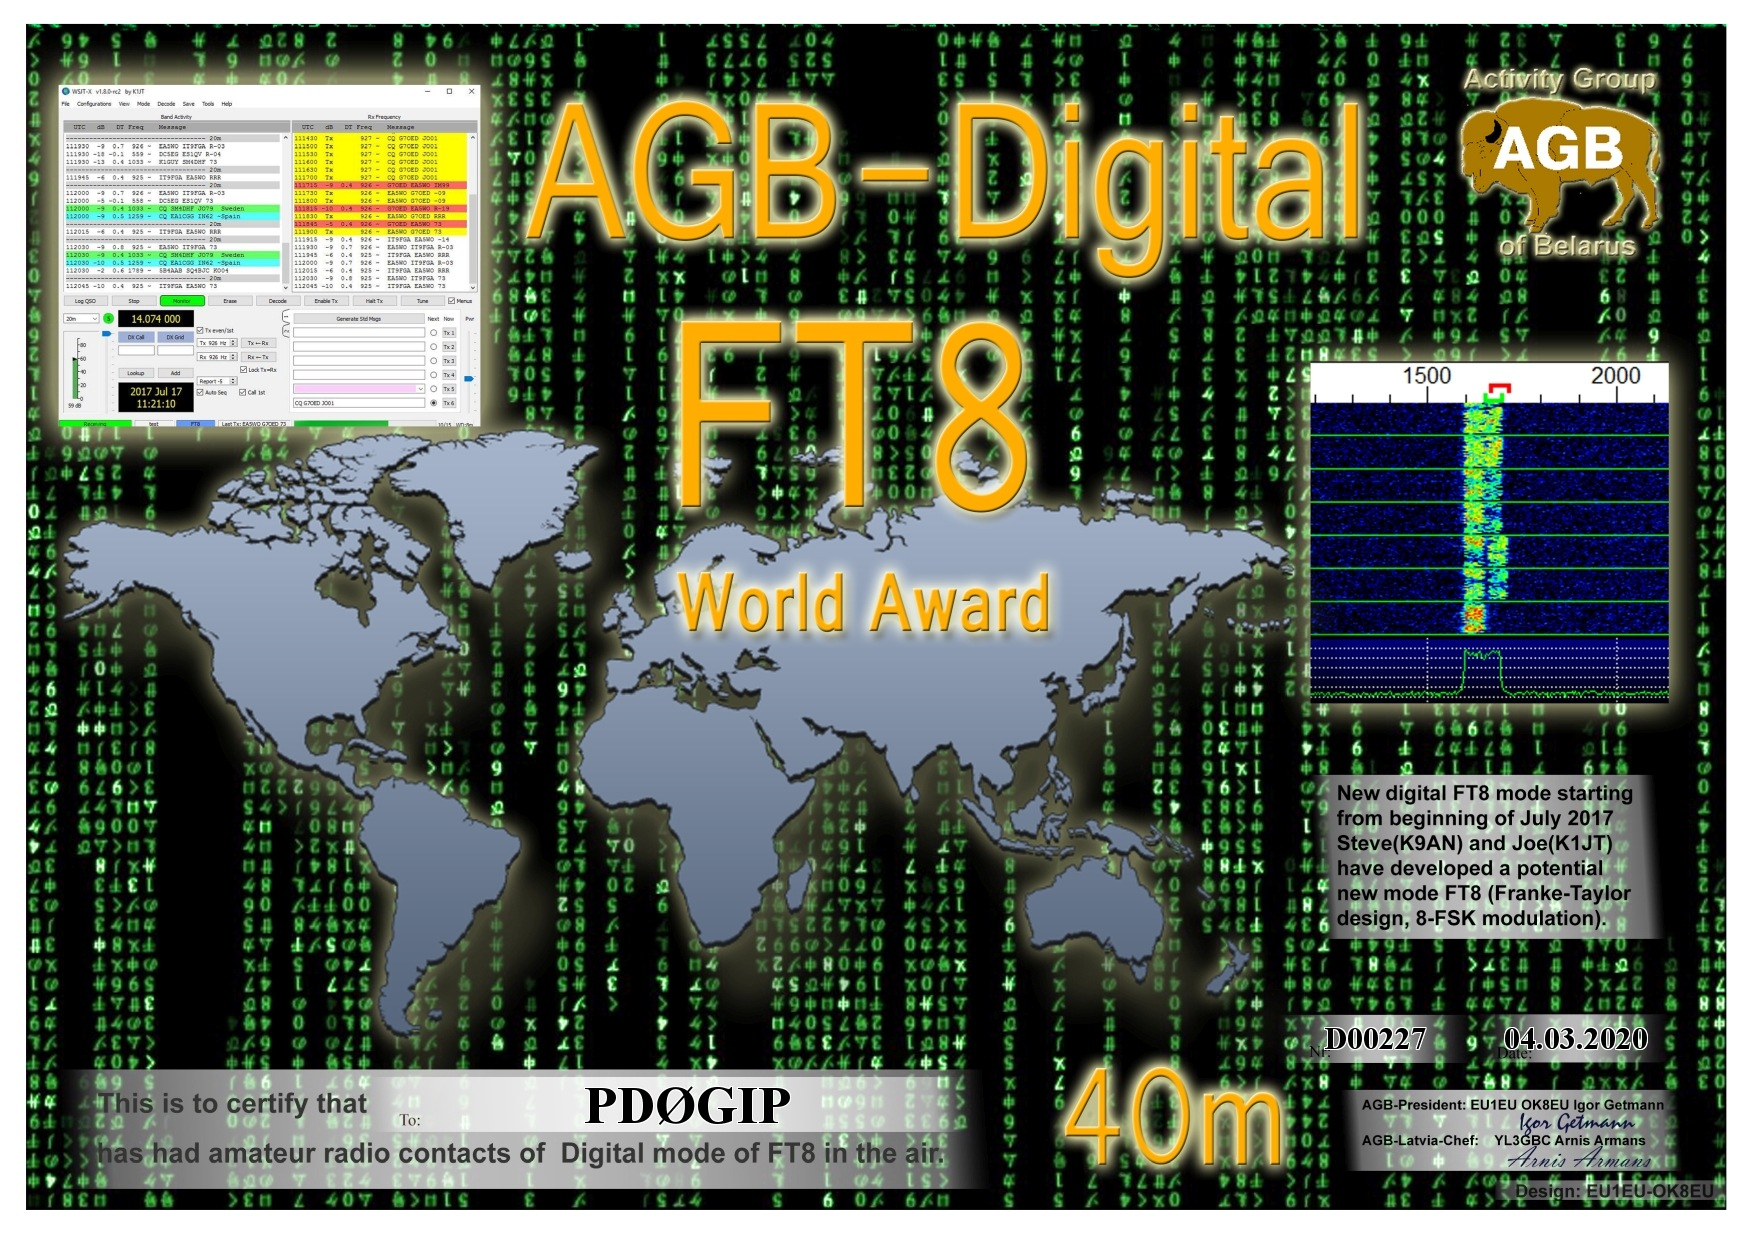 PD0GIP FT8 WORLD 40M AGB